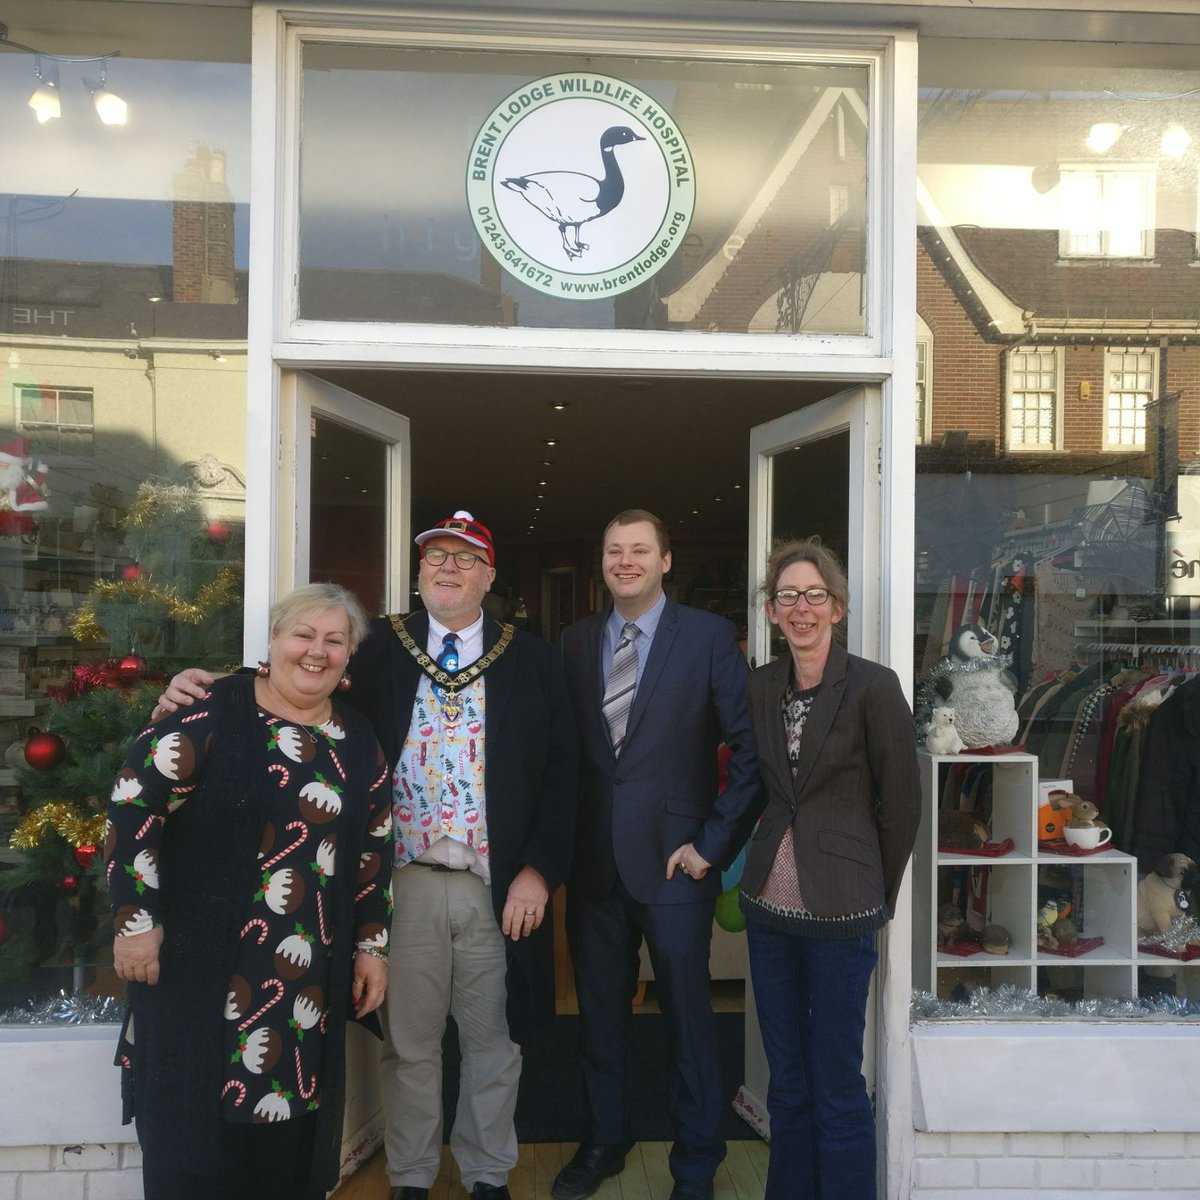 test Twitter Media - Wow what an excellent day at our official shop opening in our Bognor Regis shop yesterday. Thanks to the Mayor of Bognor for coming along to open the doors and welcome the first visitors. Thanks also to all the visitors please continue to drop by. https://t.co/4K3qTinowF